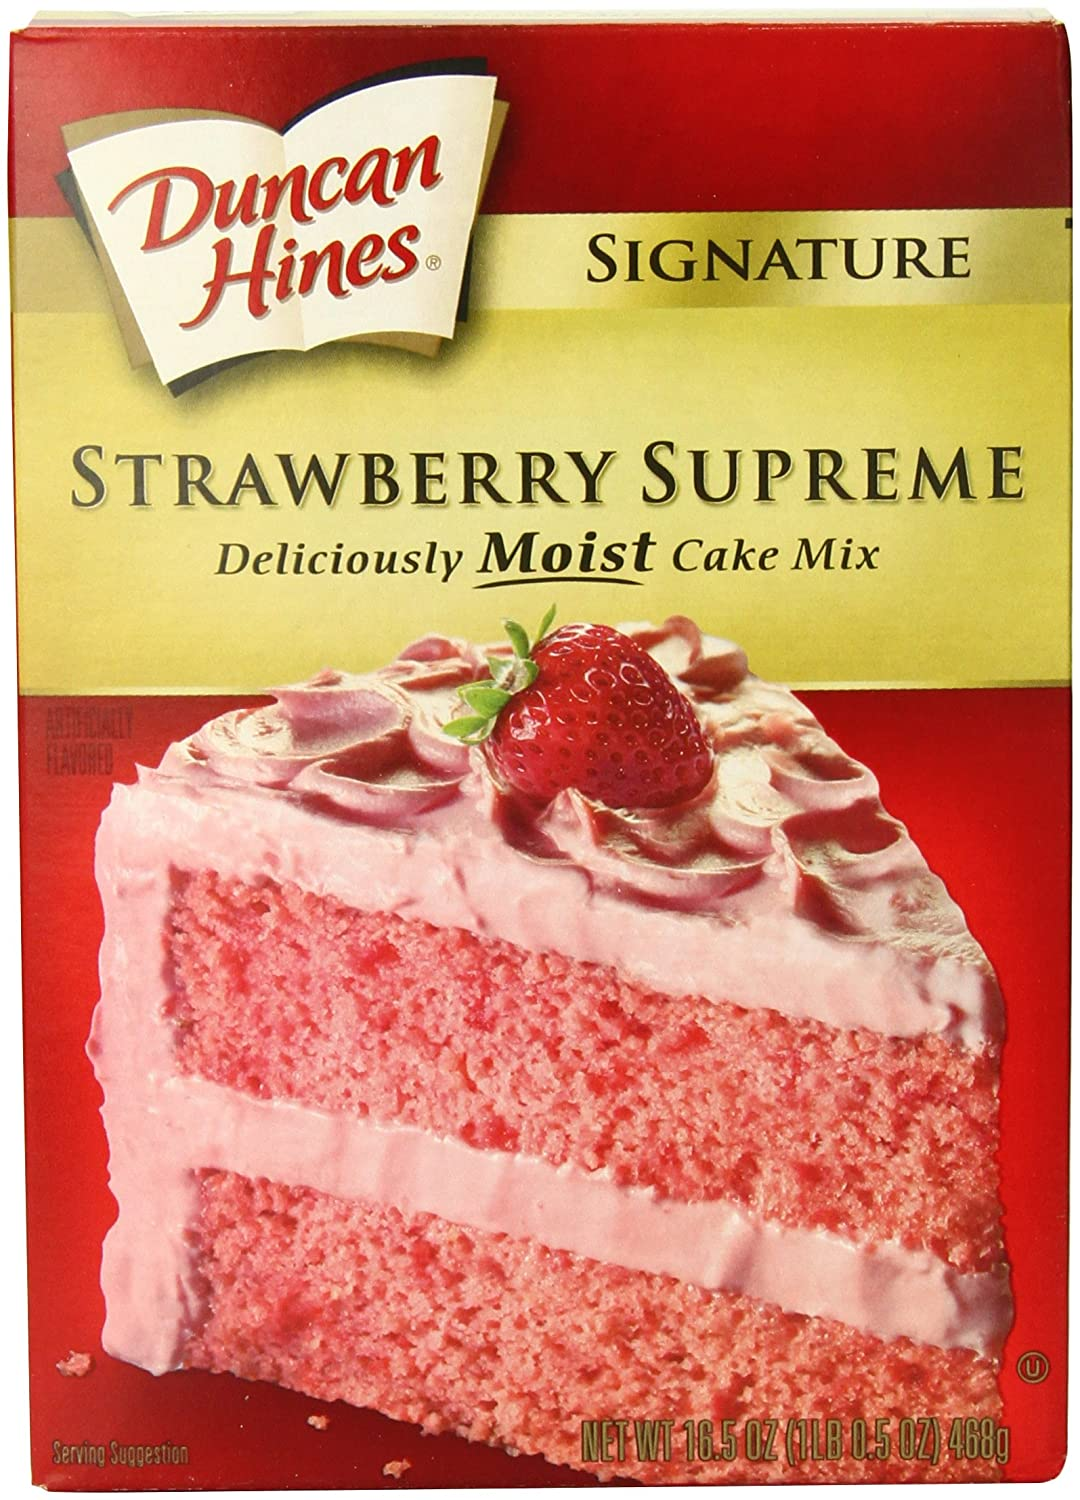 Duncan Hines Strawberry Cake Mix Recipes